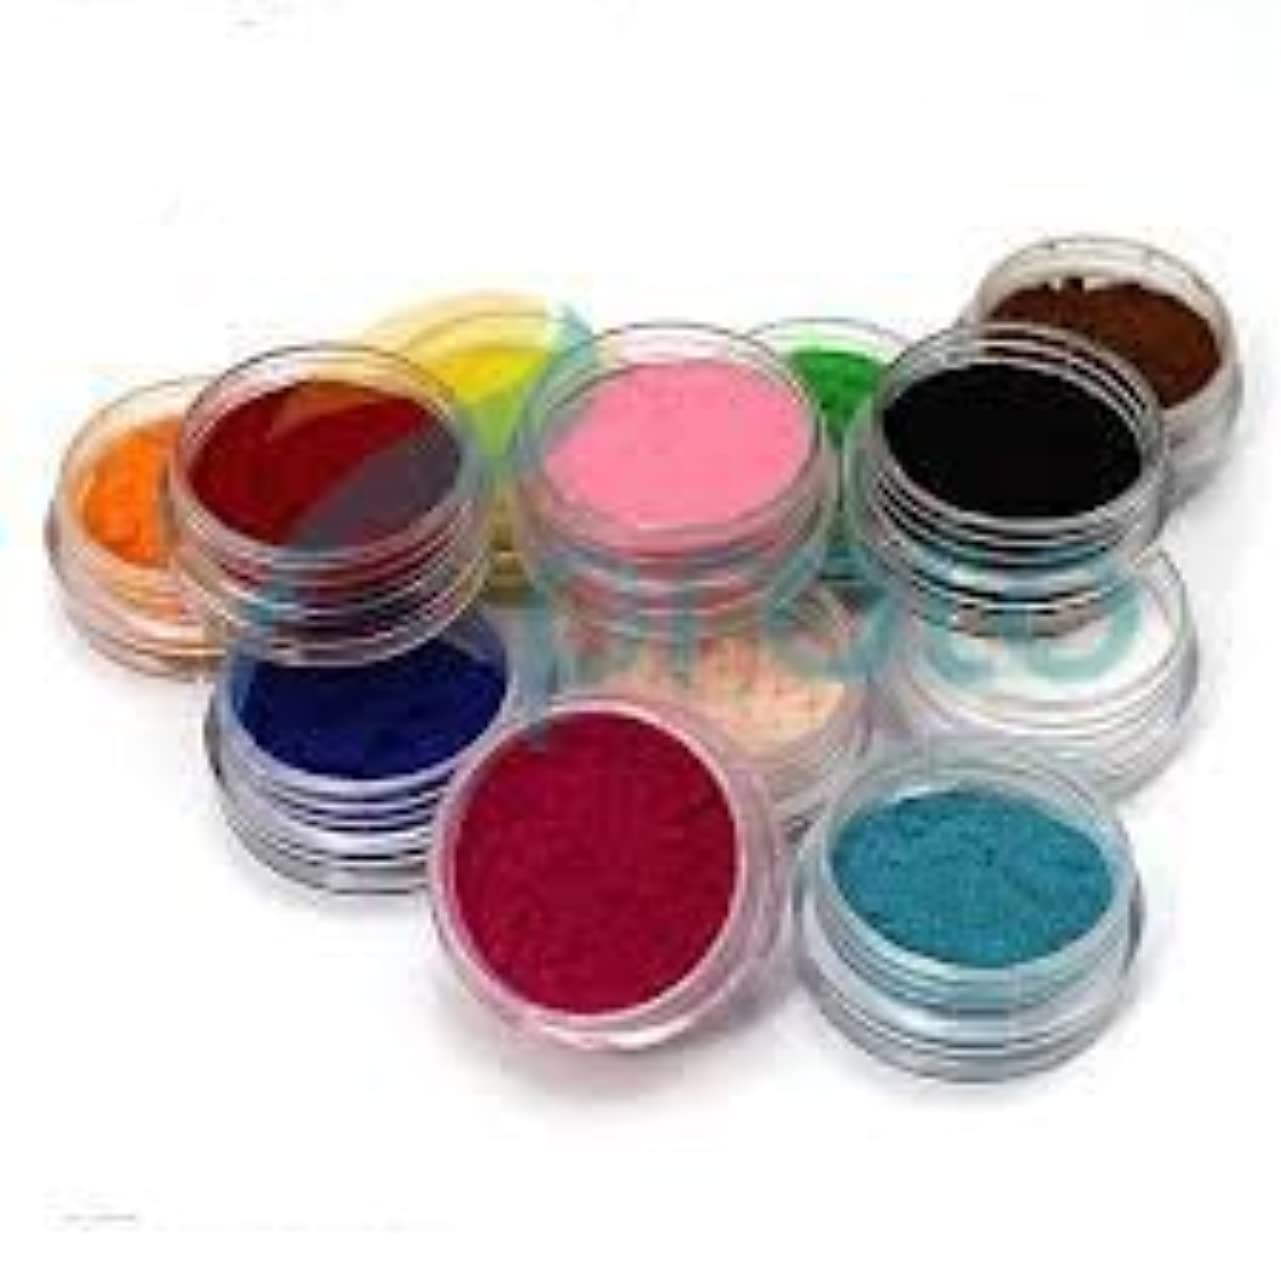 外科医フィッティング現実12 Color Nail Art Velvet Flocking Powder Kit Decoration Polish Tips Manicure